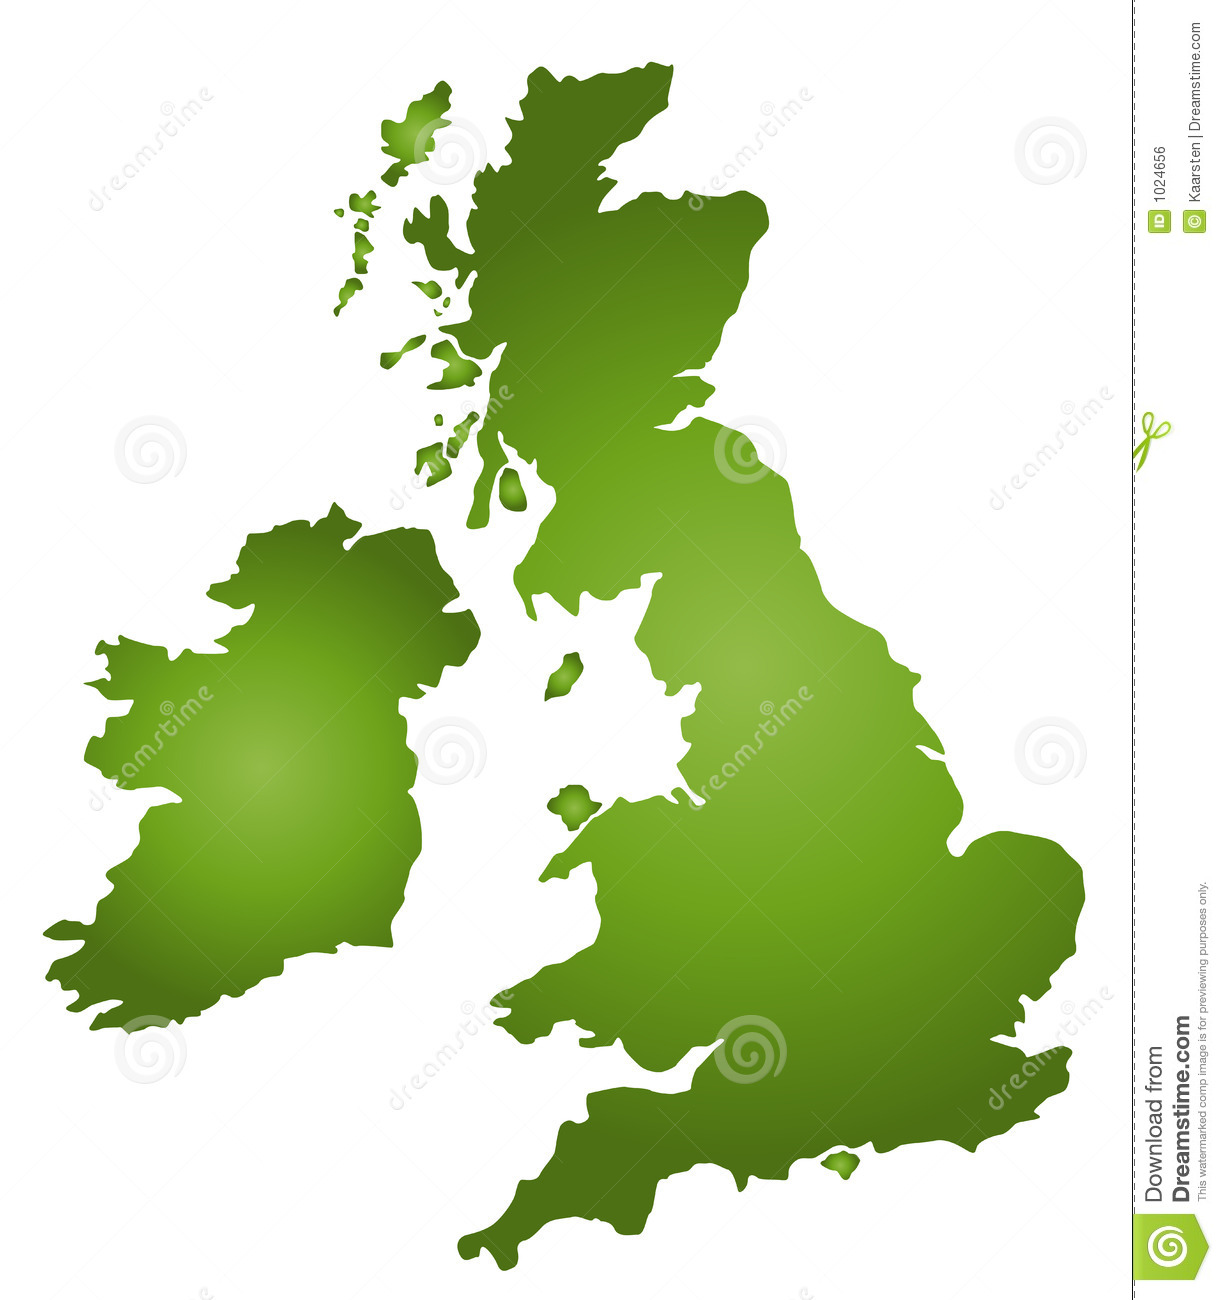 United Kingdom clipart Clipart England Uk Clipart Collection